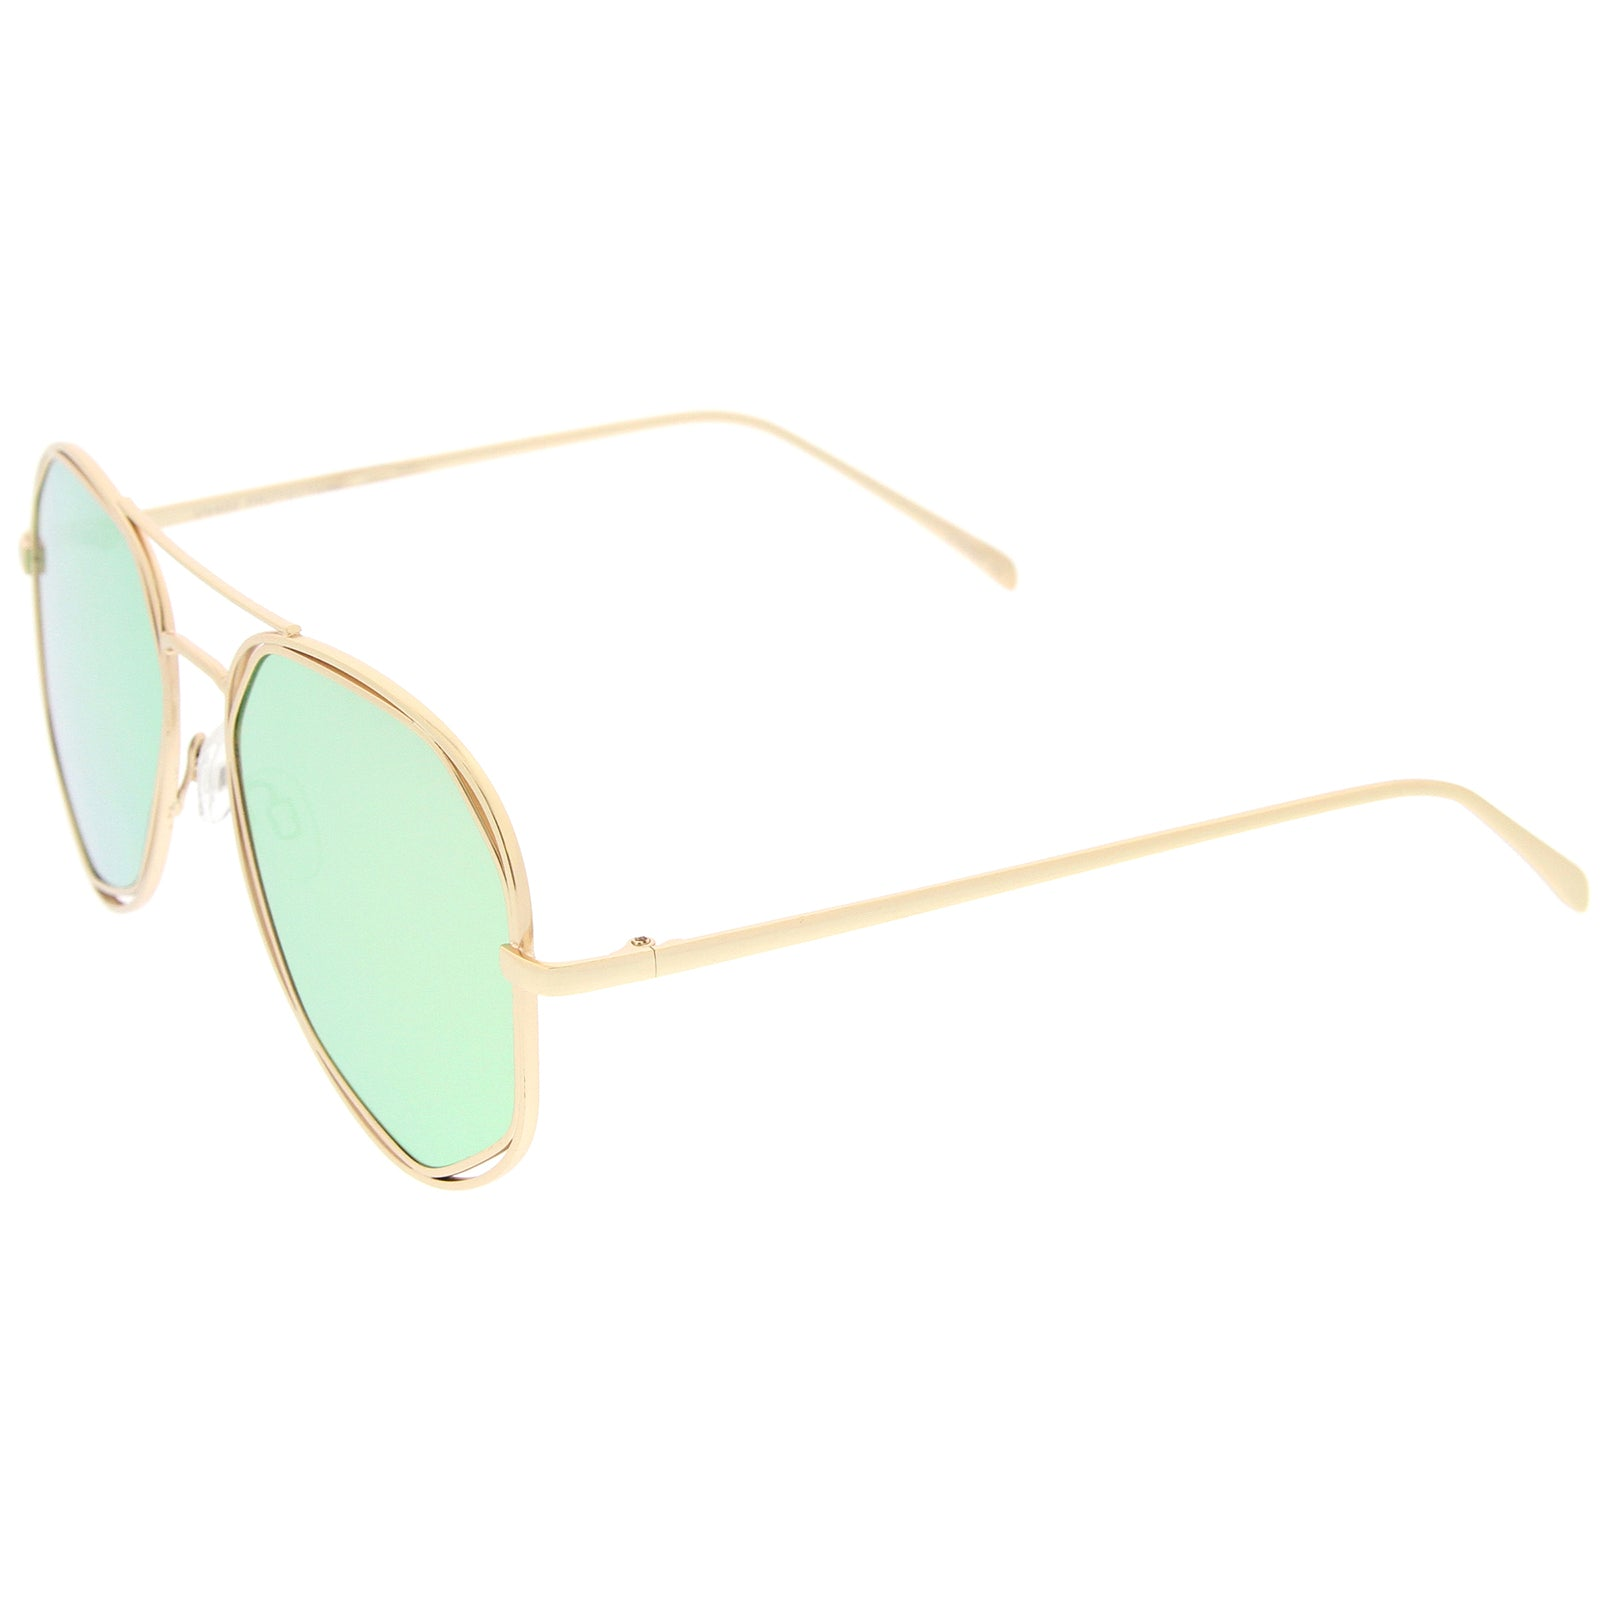 Geometric Hexagonal Metal Frame Colored Mirror Flat Lens Aviator Sunglasses 60mm - sunglass.la - 3